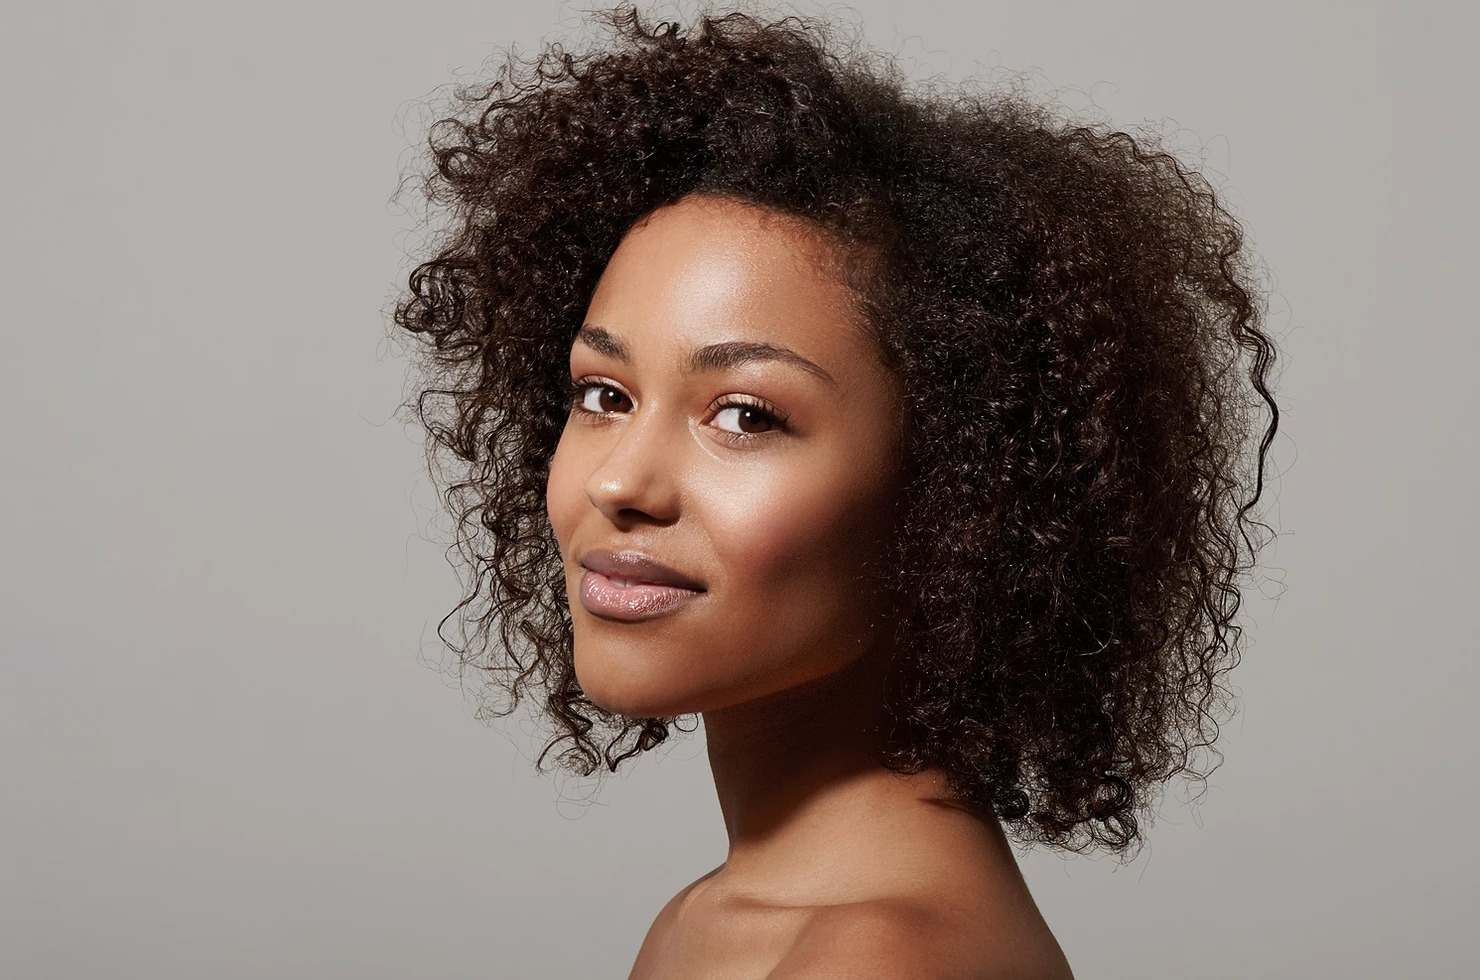 african american model with radiant skin